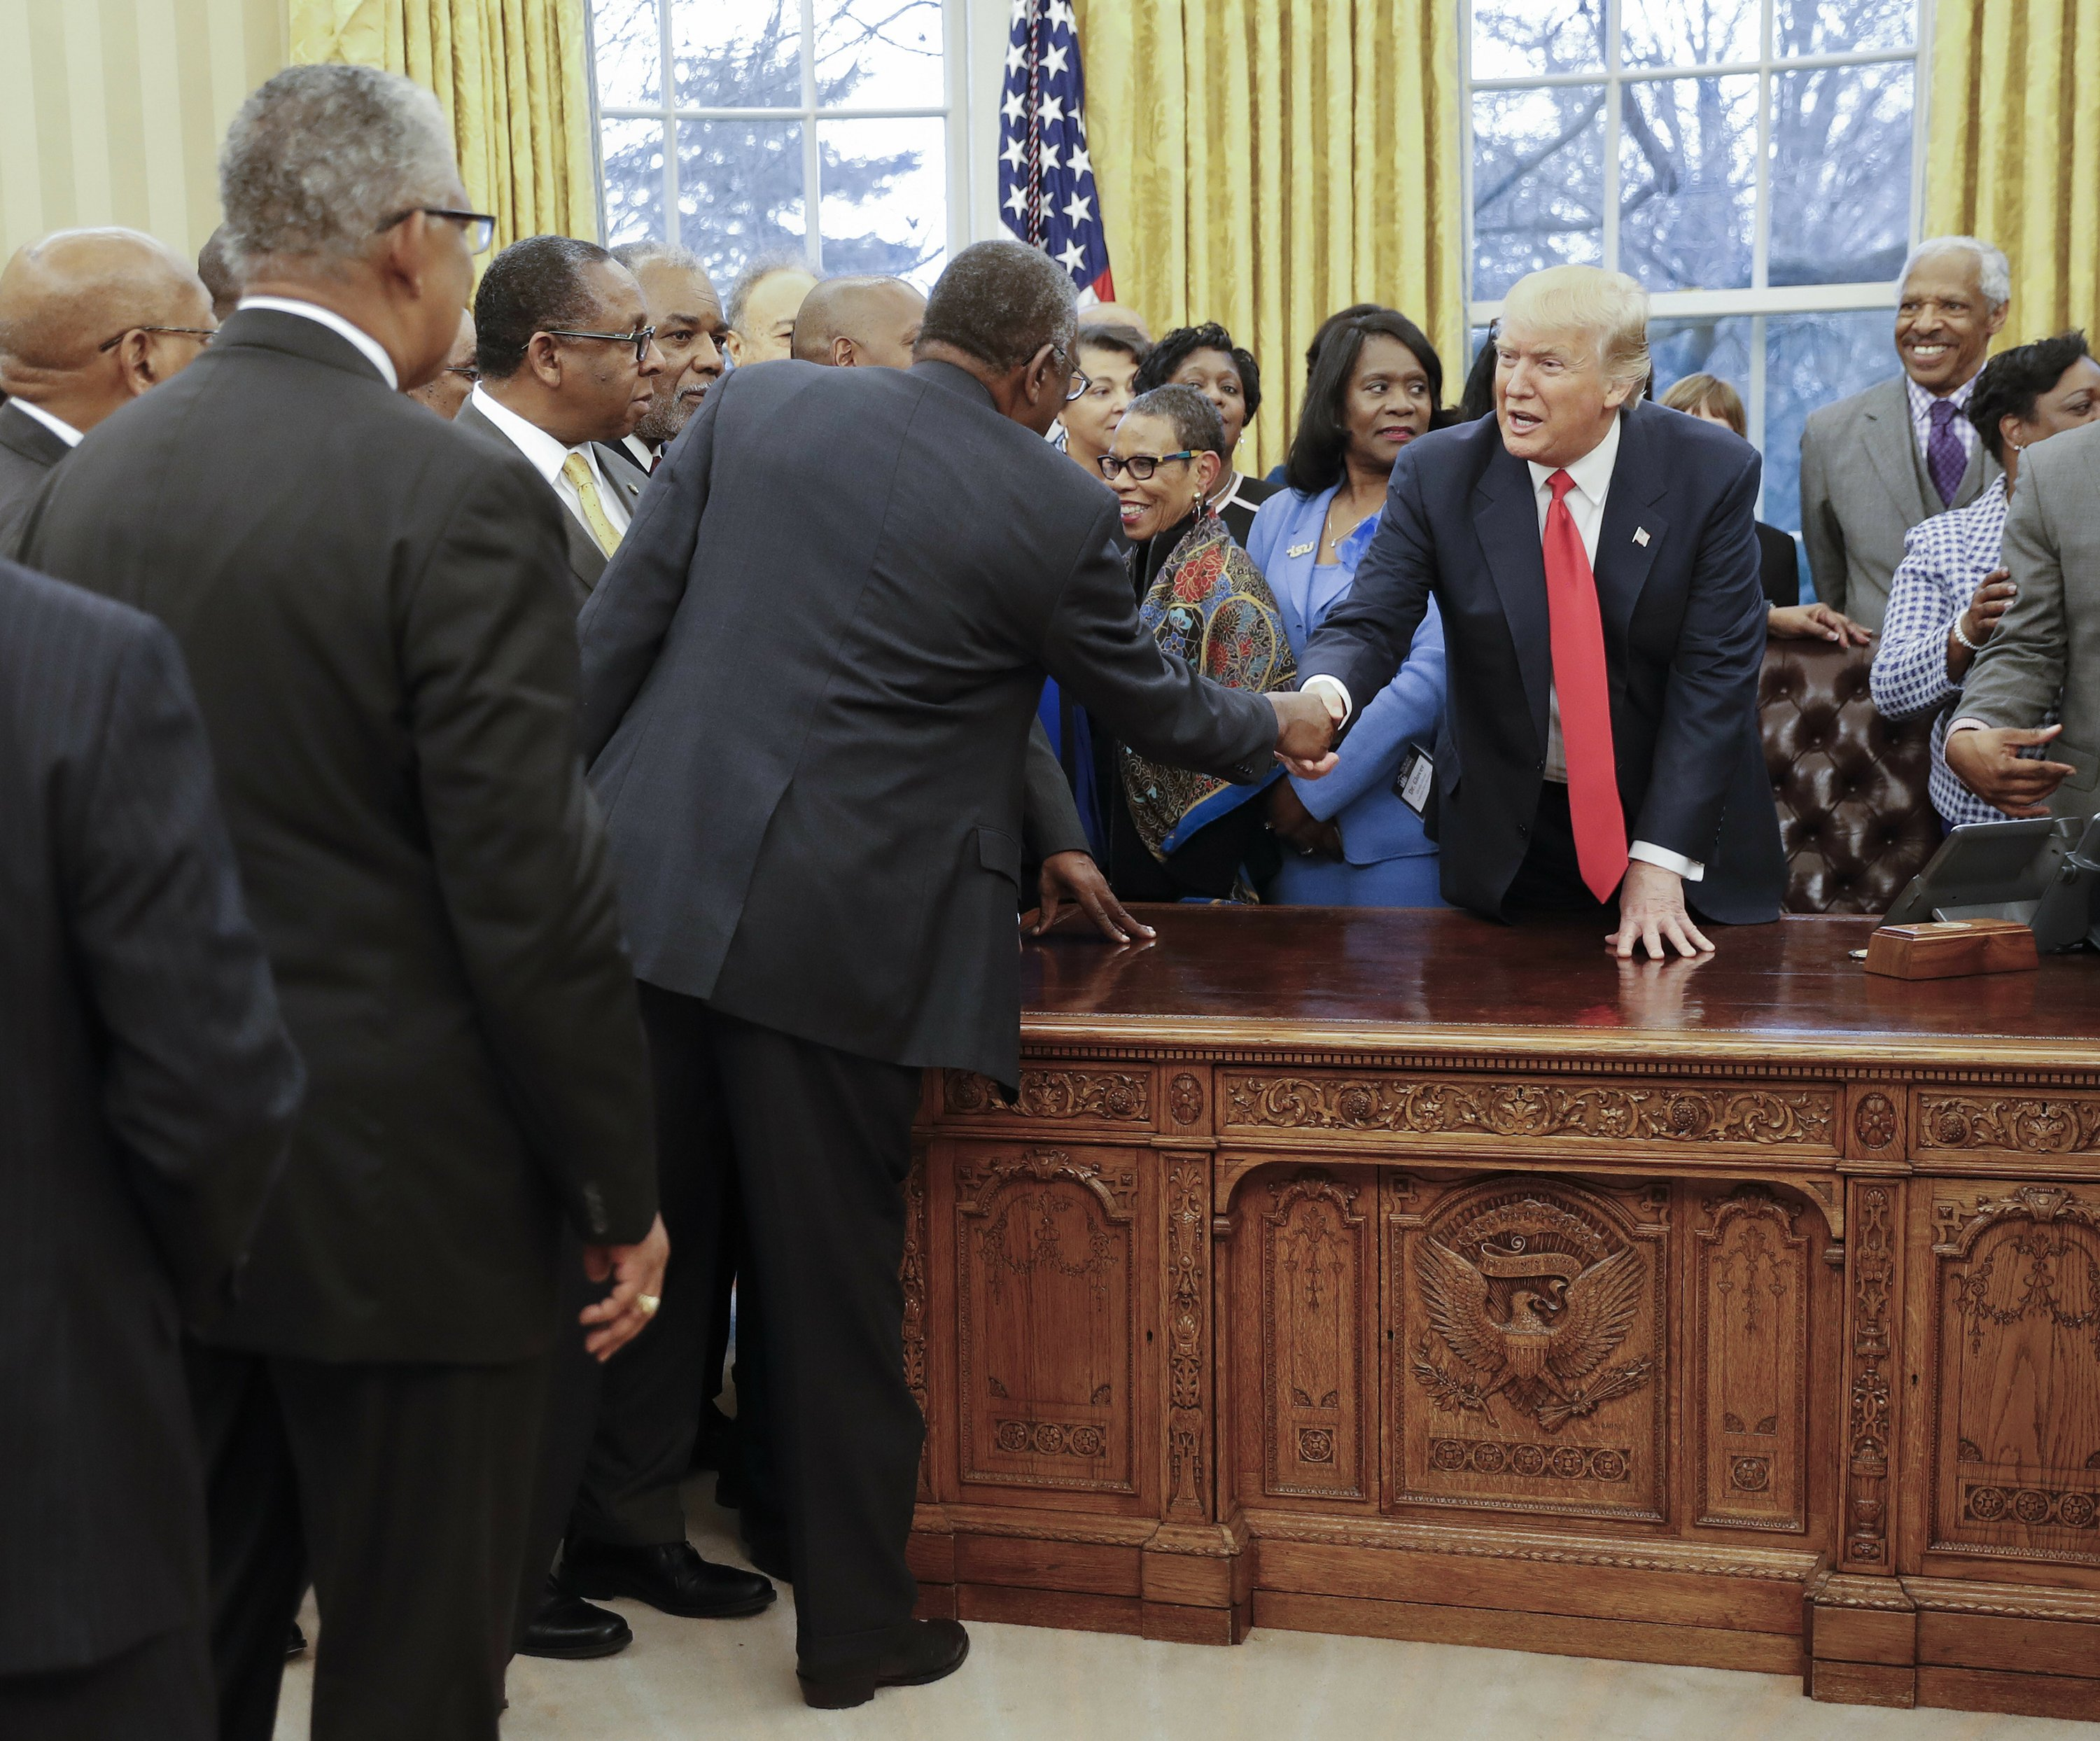 The Latest: Trump meets with leaders of black colleges